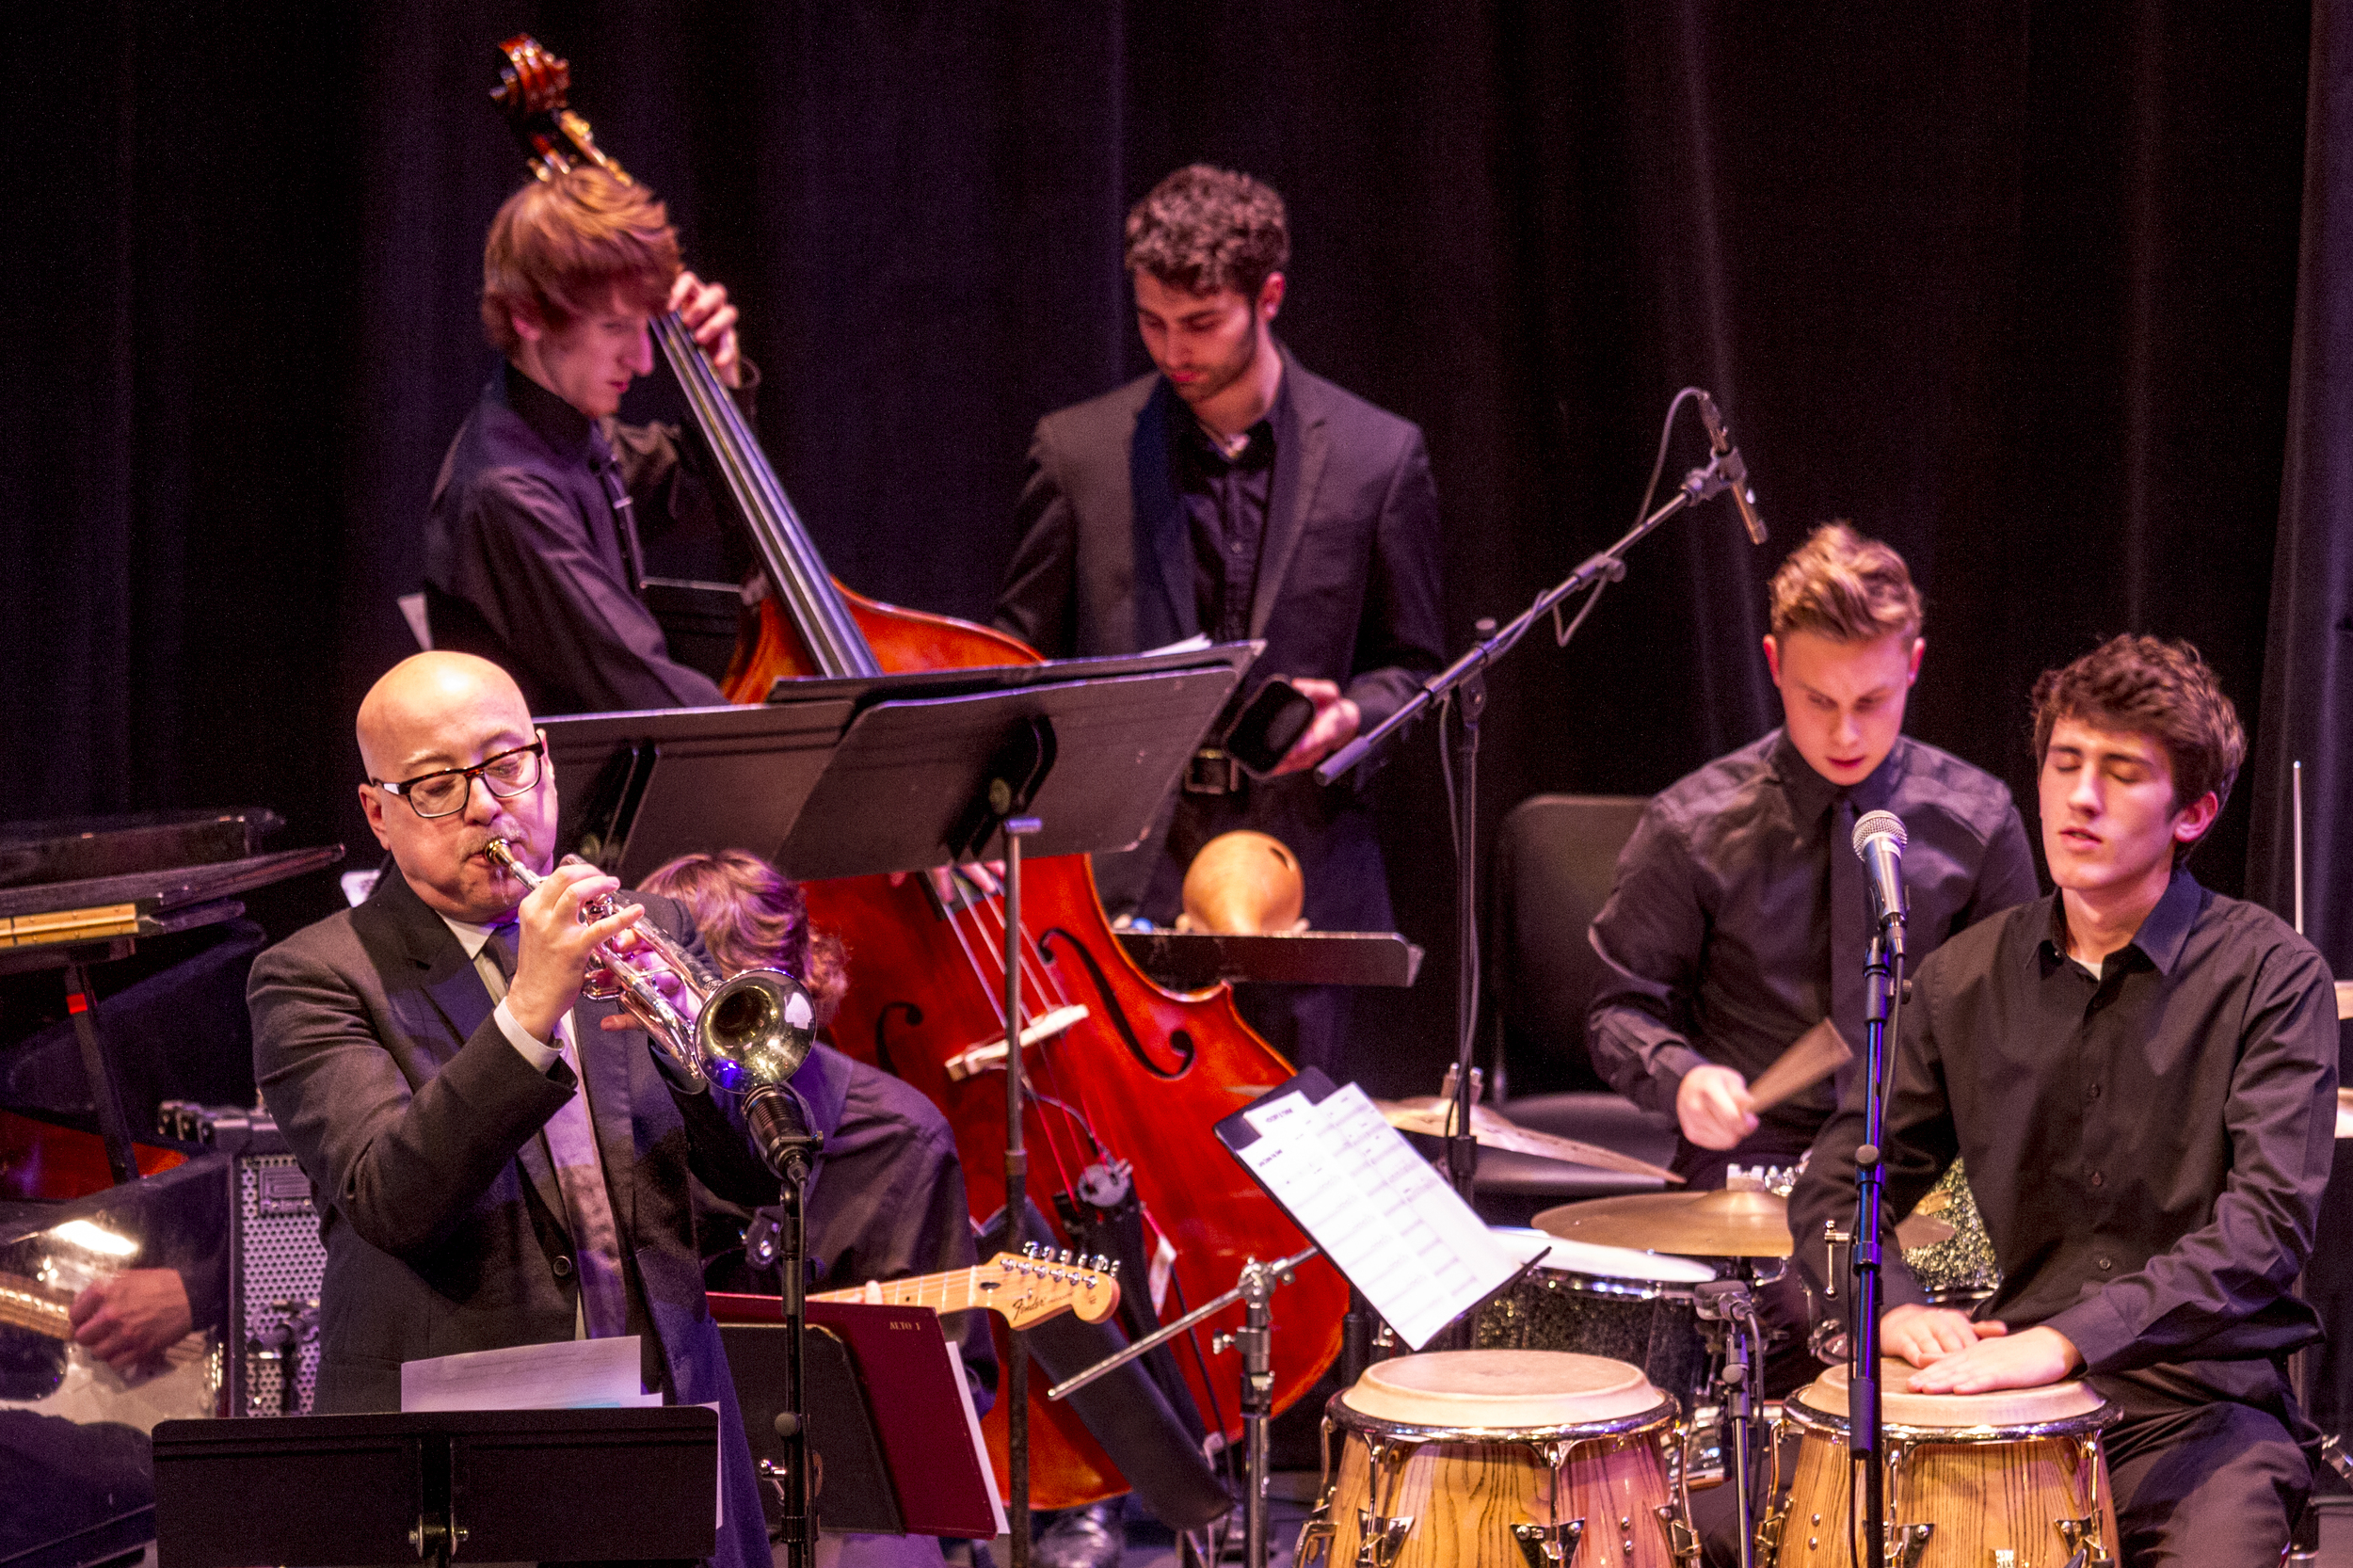 2014 UW Honors Jazz Band performing with trumpeter Brian Lynch